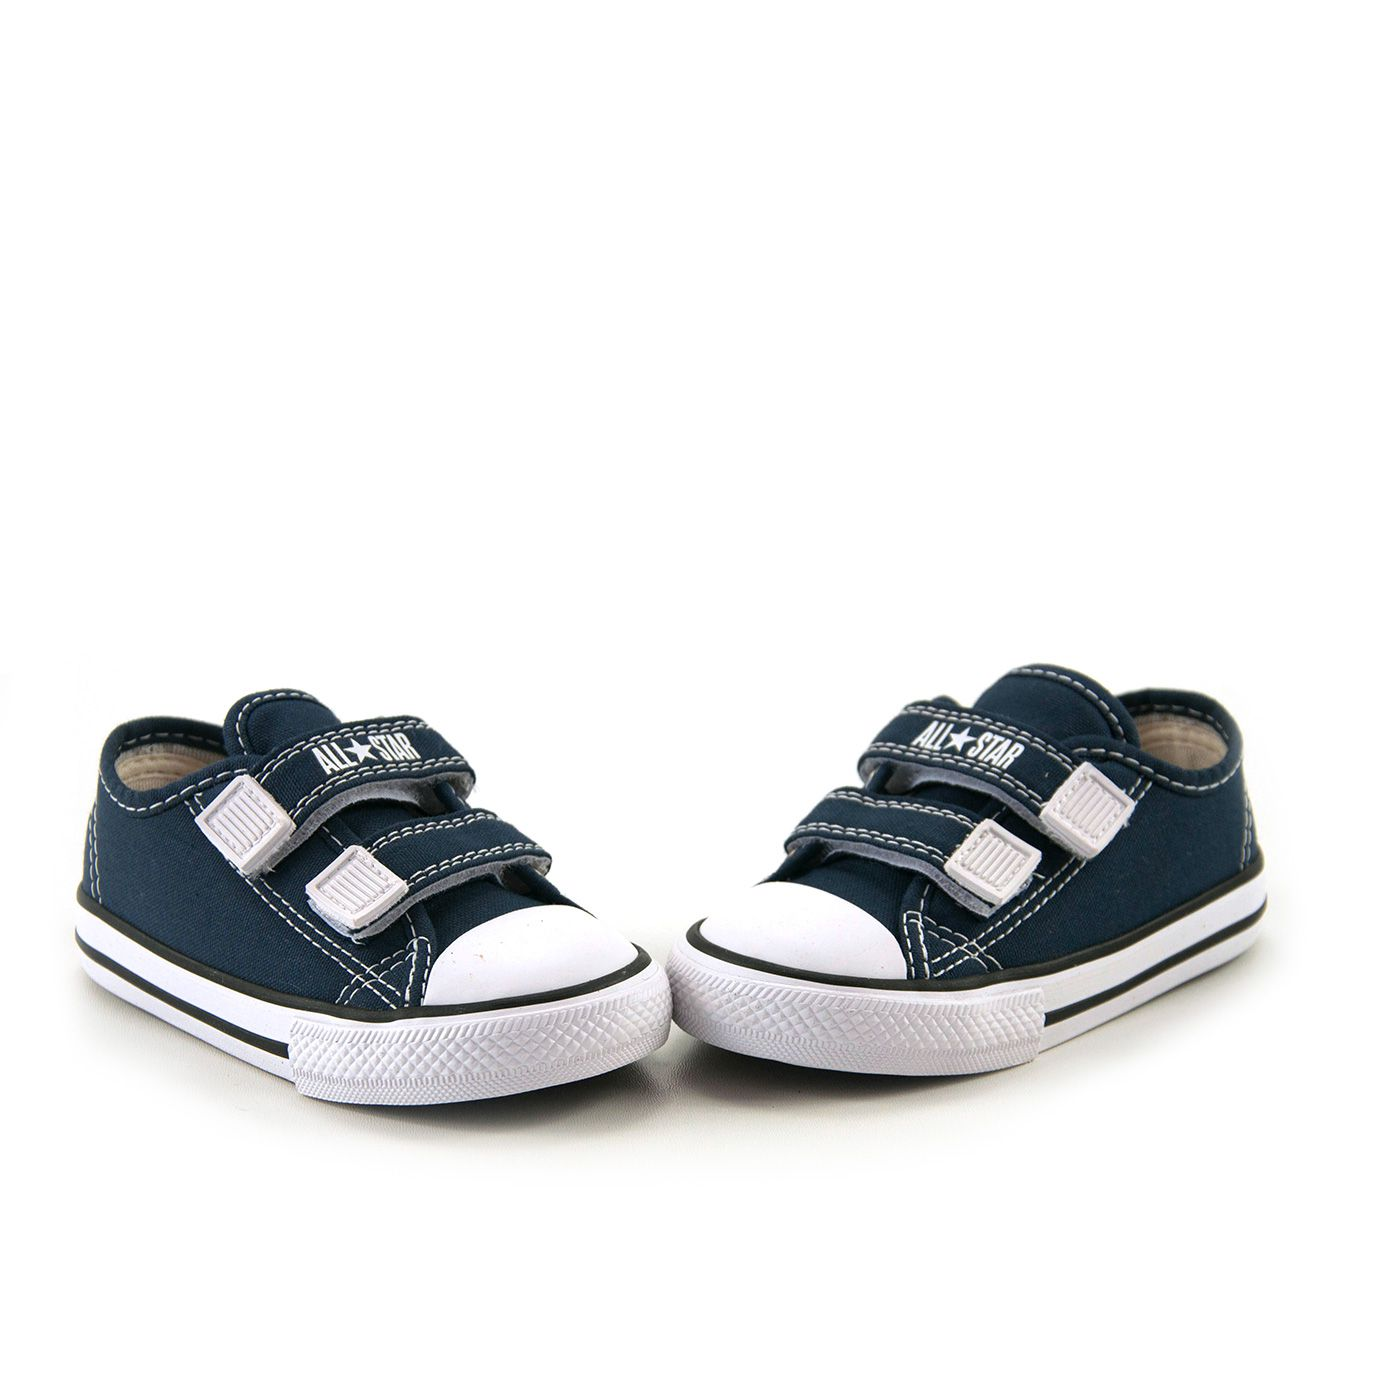 TENIS ALL STAR CONVERSE VELCRO  - CK0507